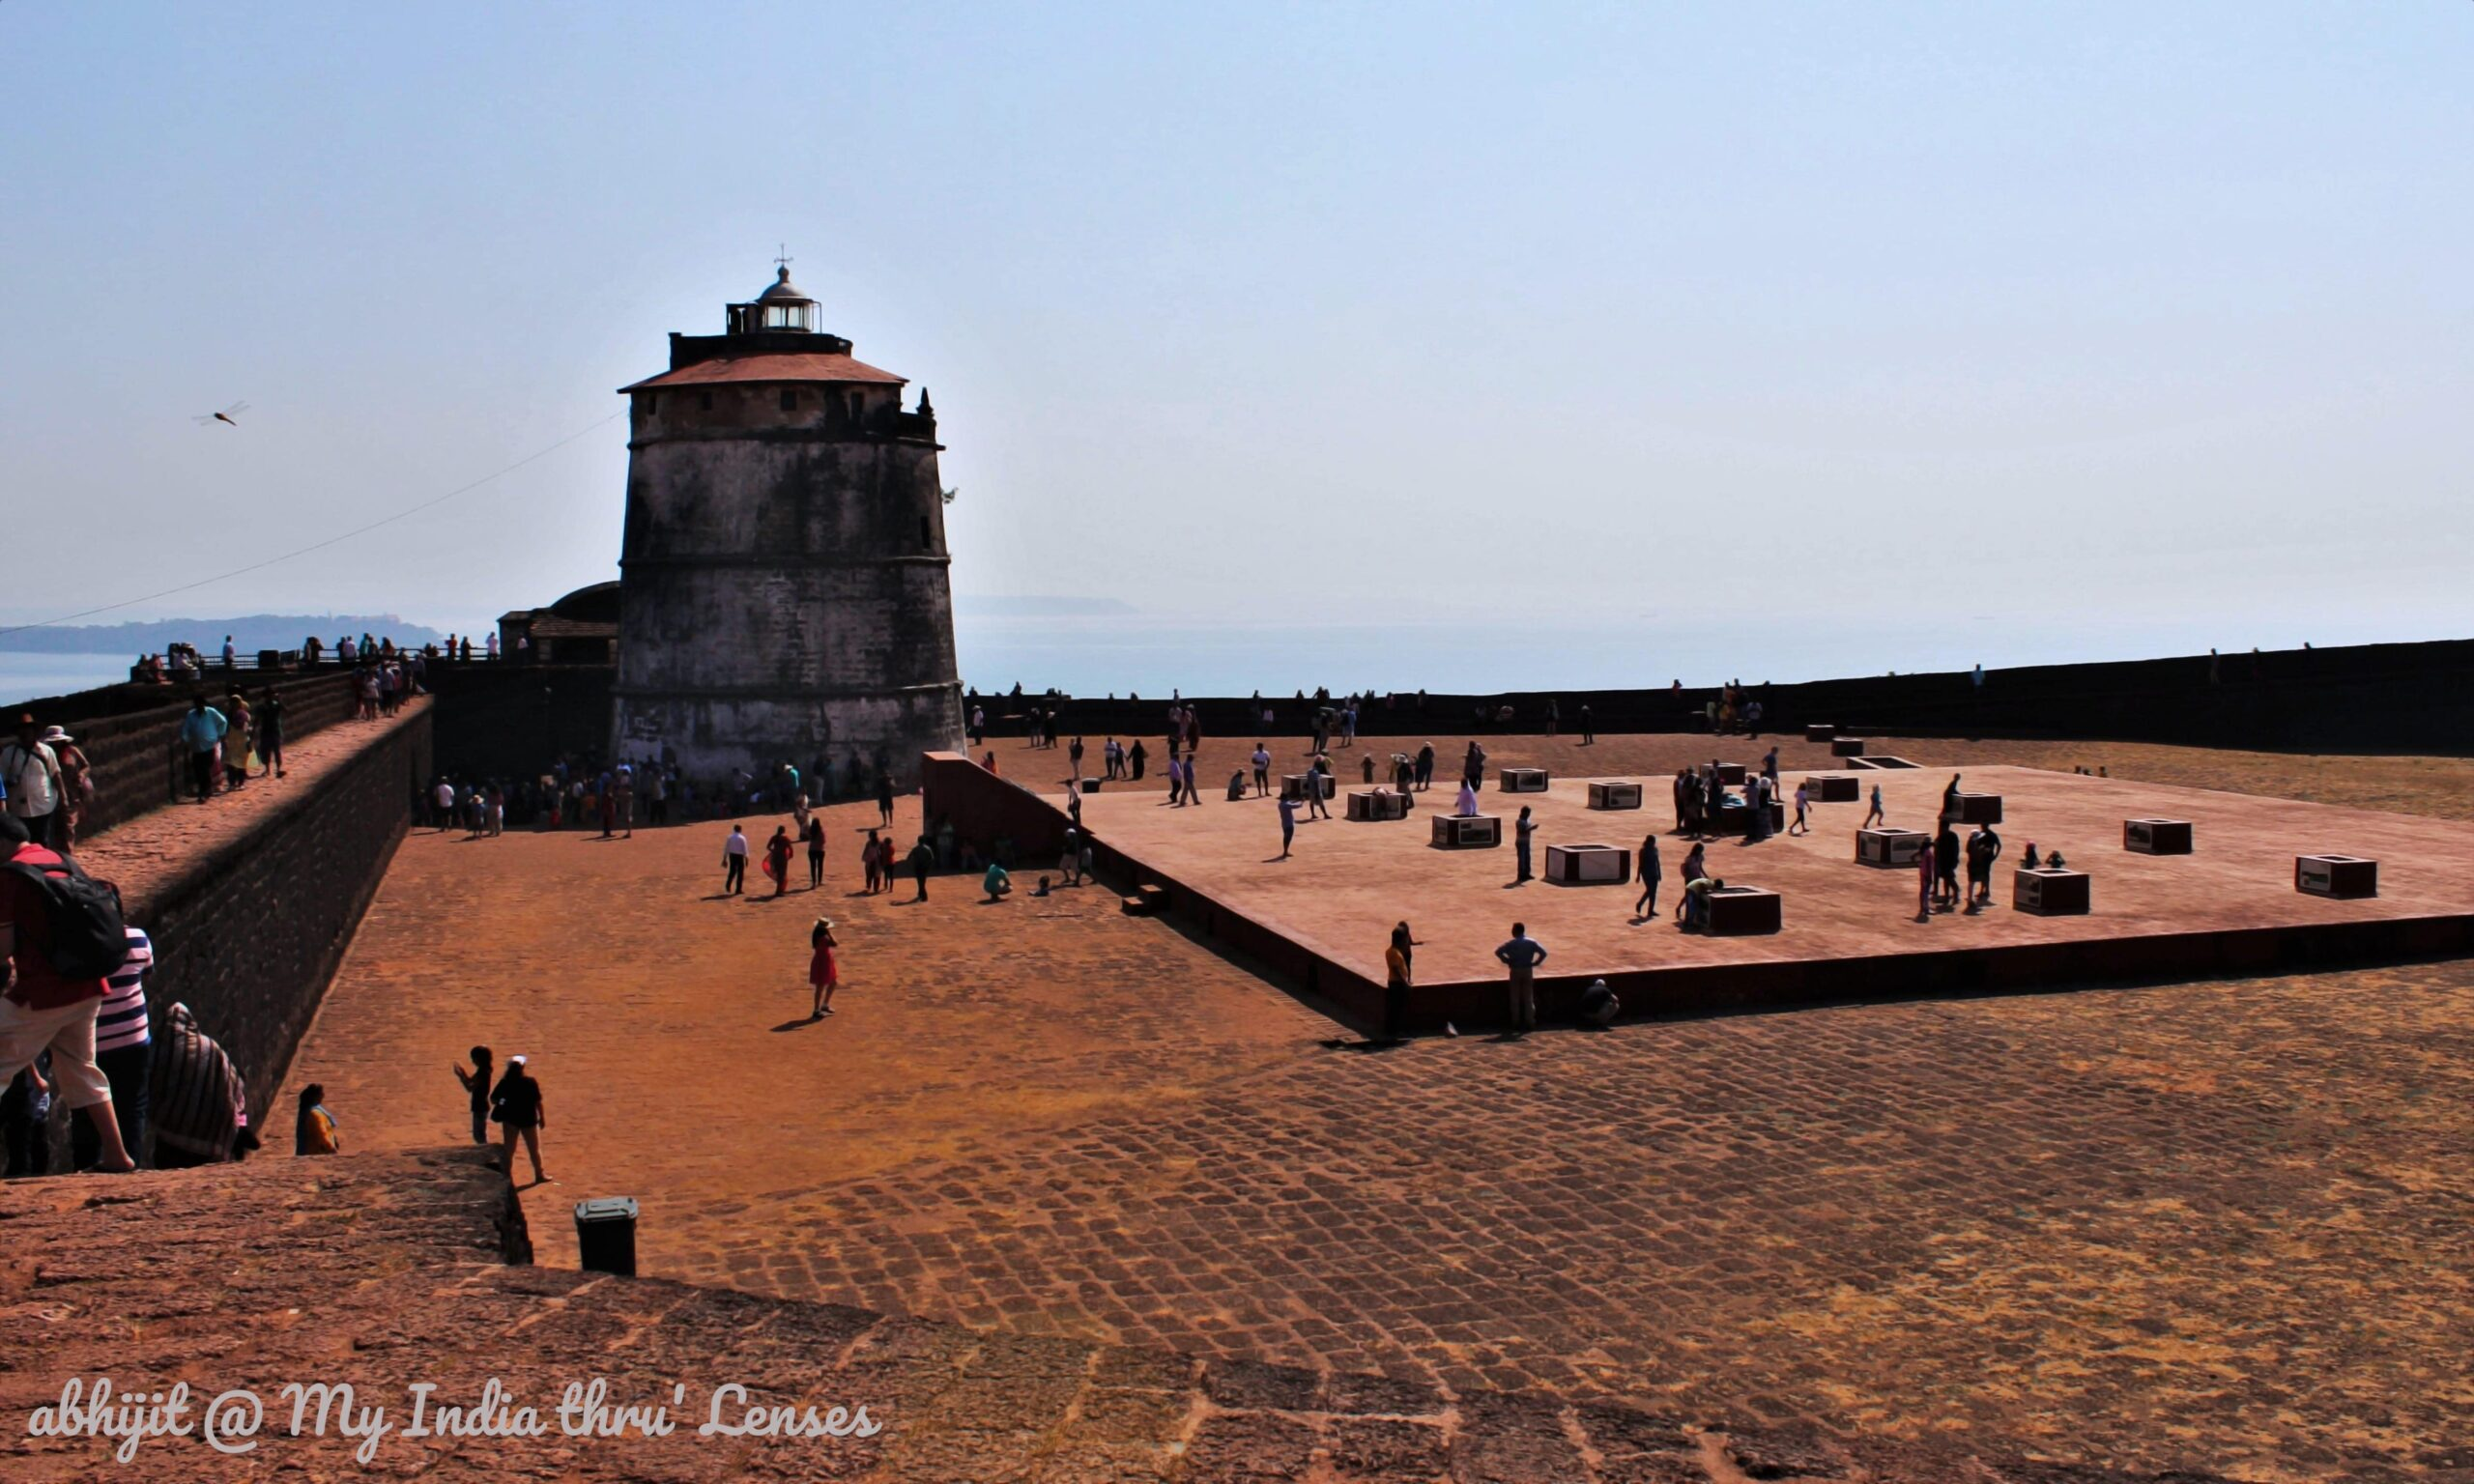 The Aguada lighthouse located at one of the corners of the open area